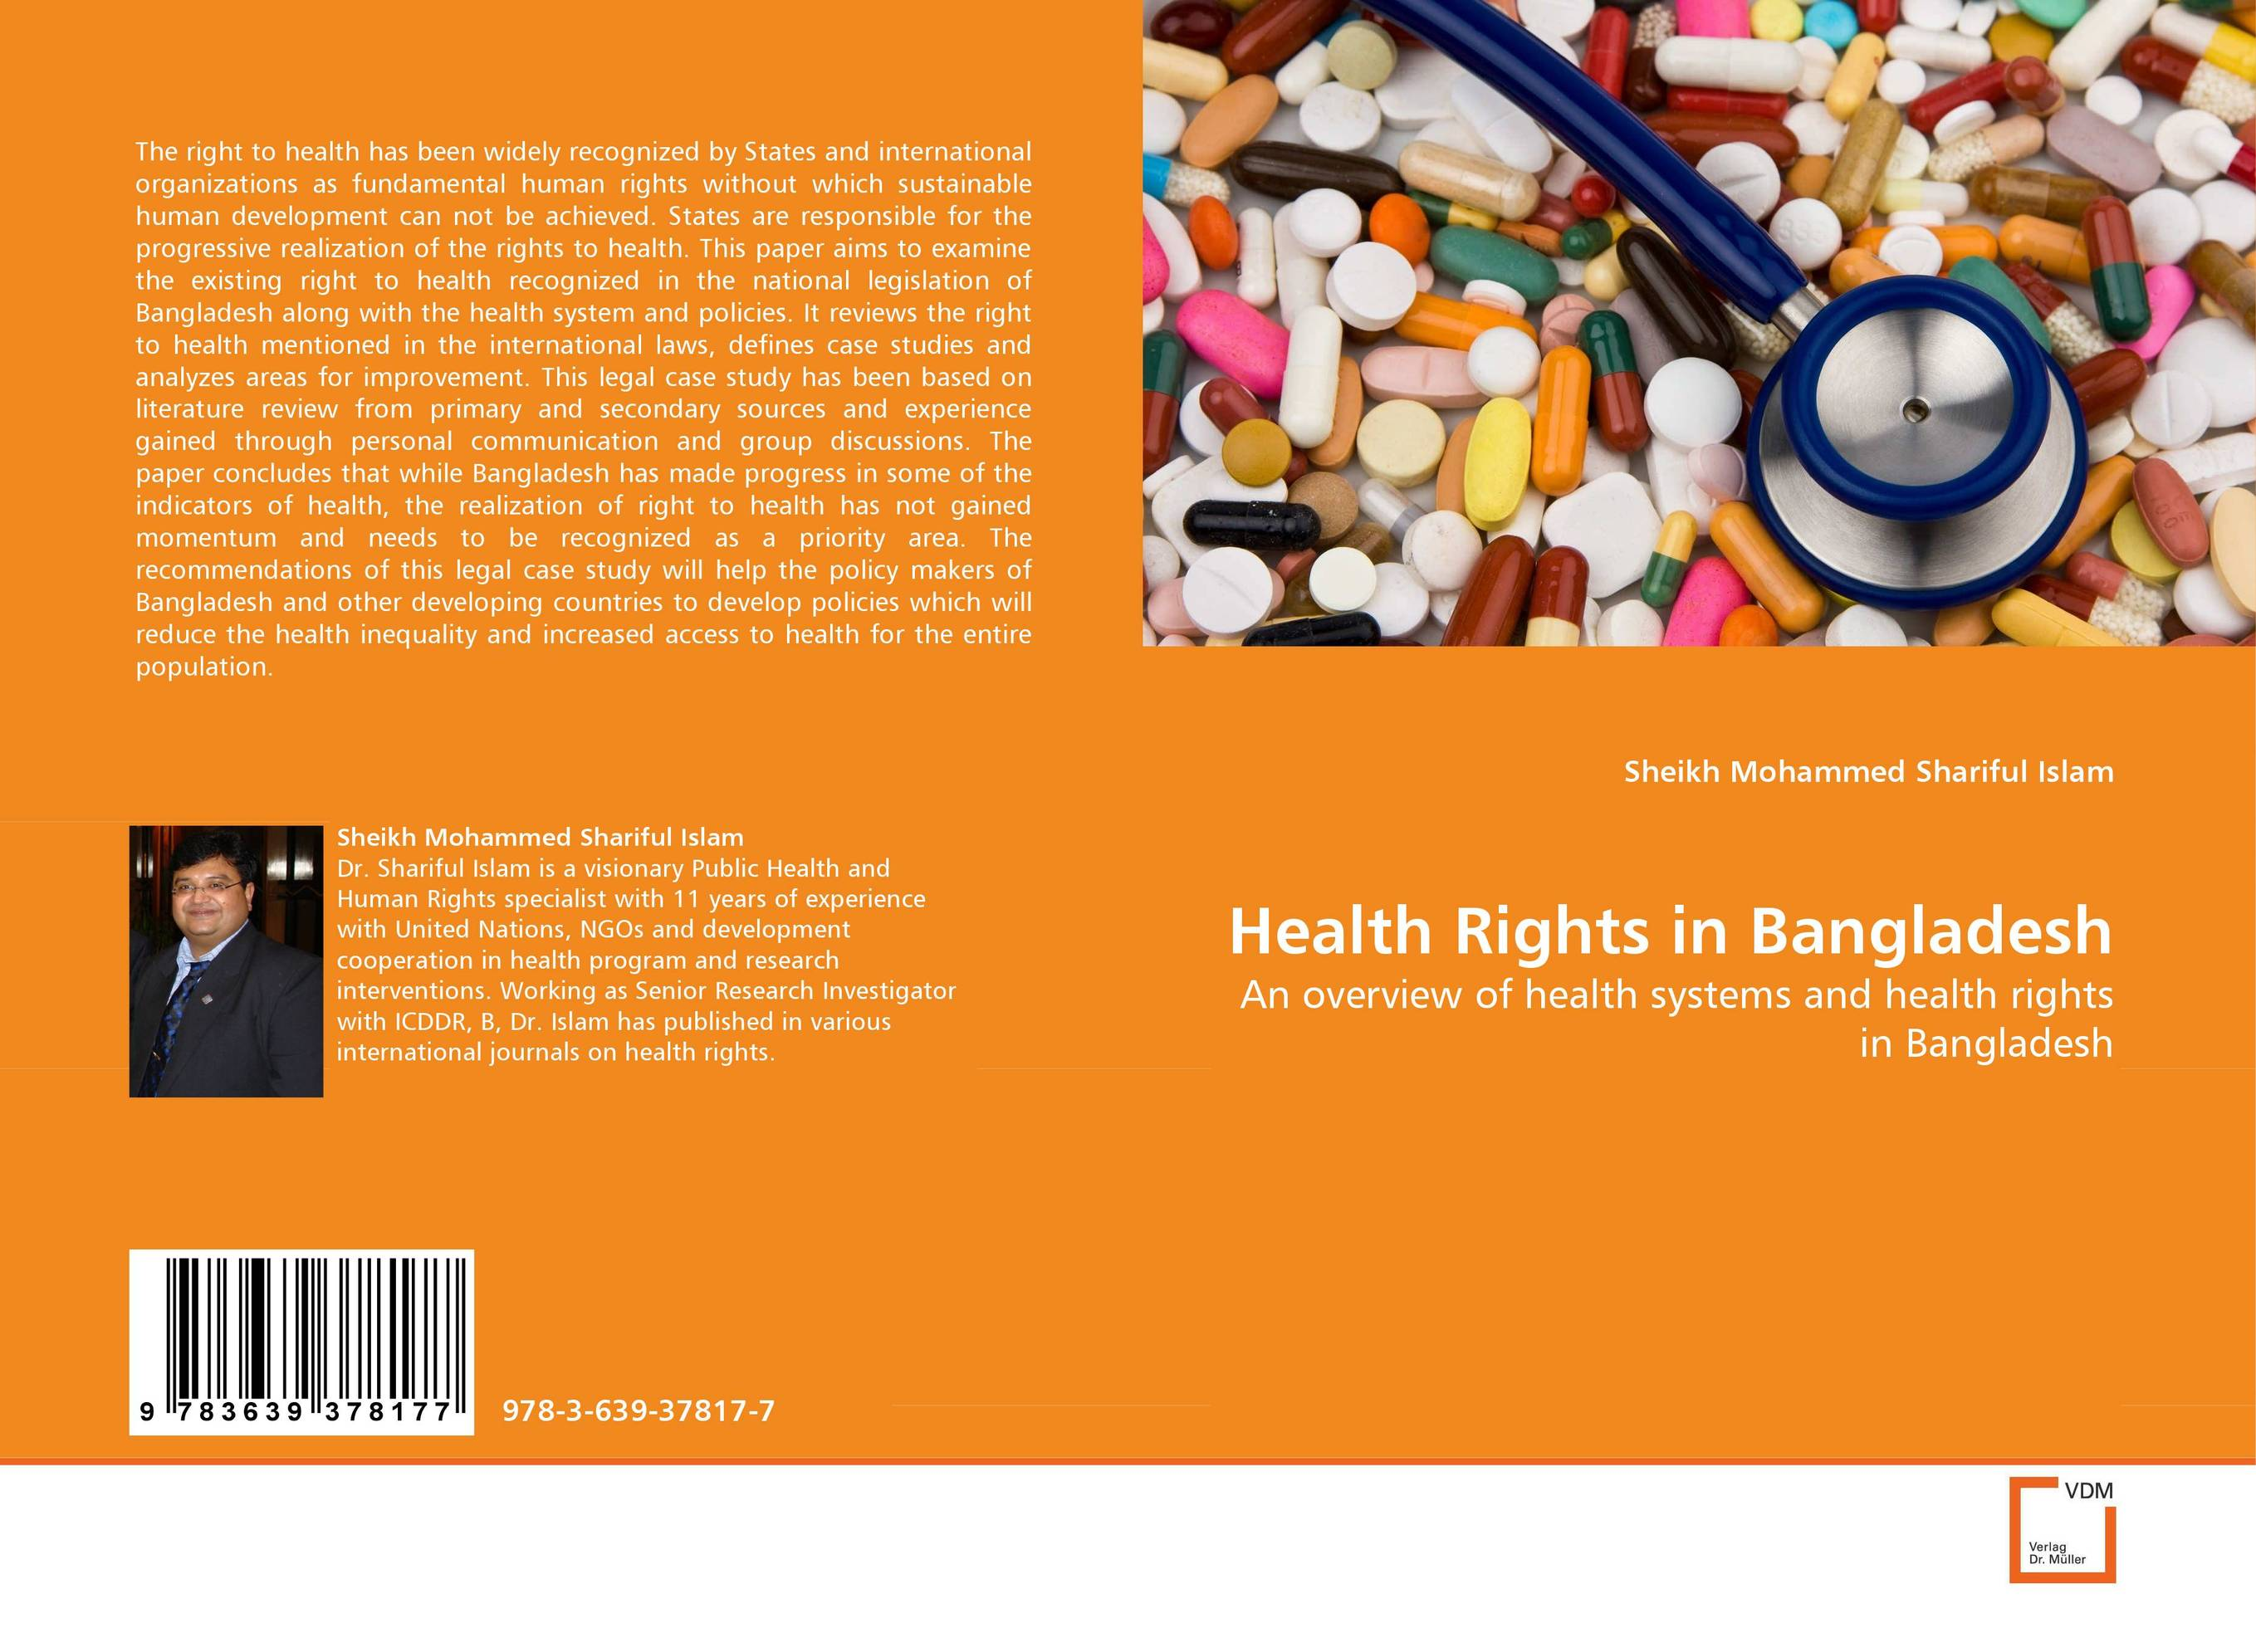 Health Rights in Bangladesh prostate health devices is prostate removal prostatitis mainly for the prostate health and prostatitis health capsule